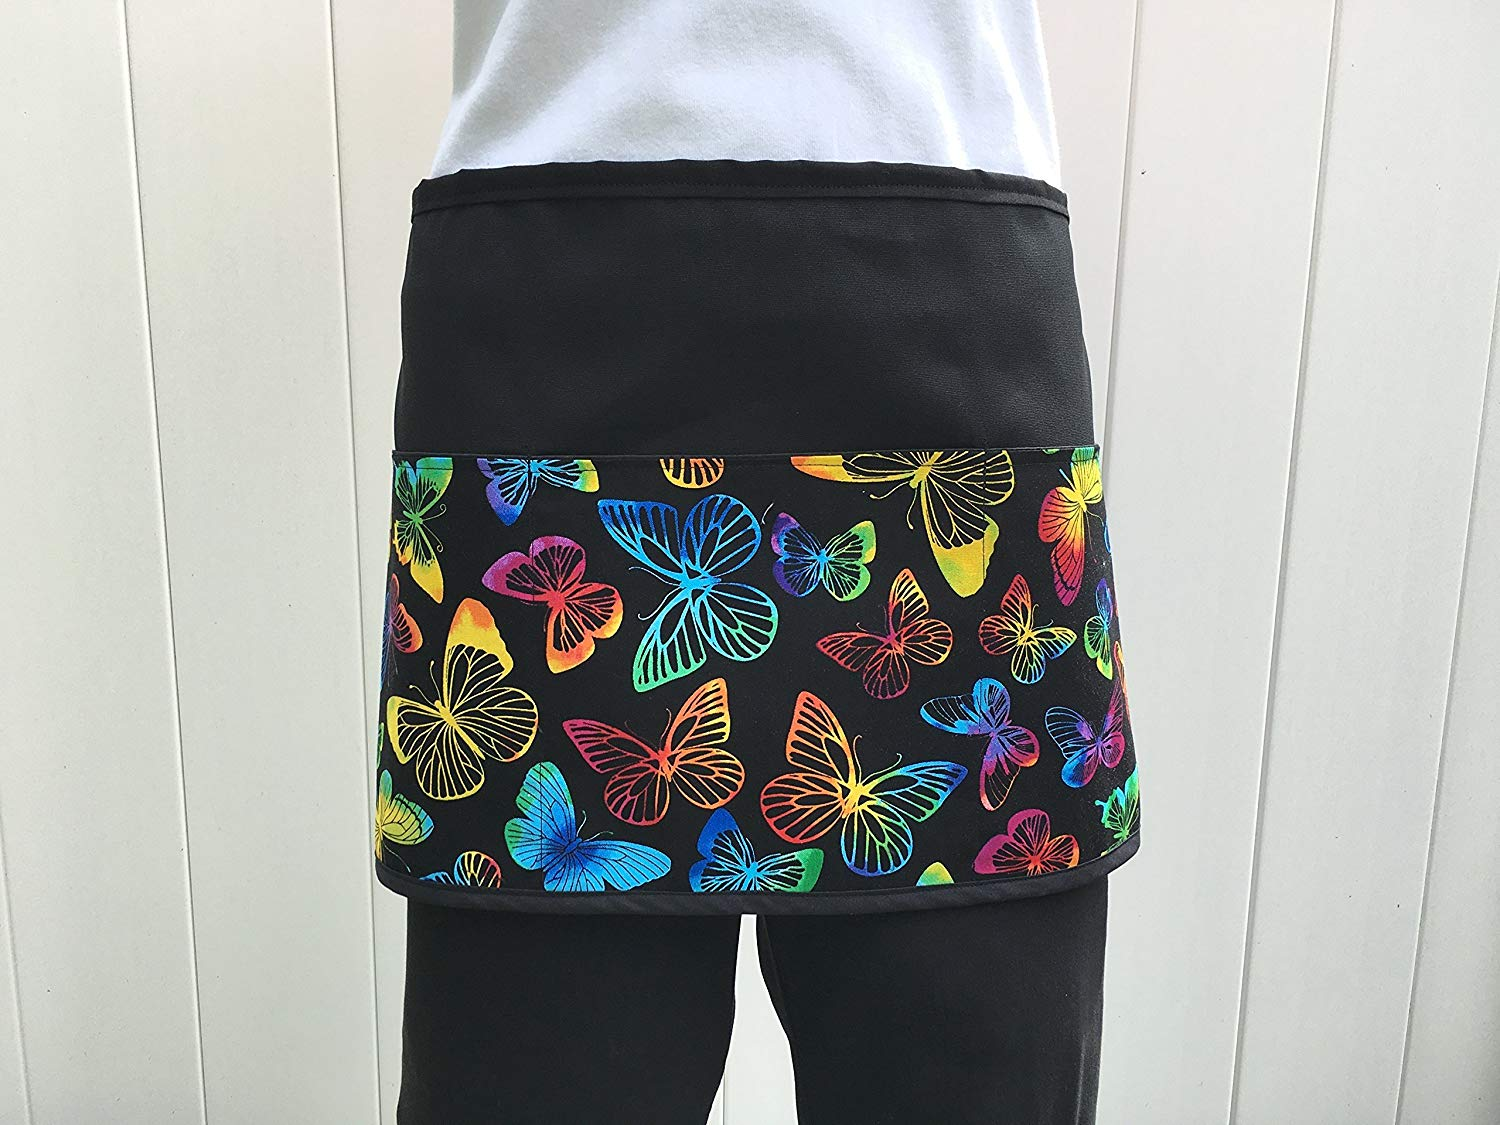 Waitress or Server, cute Butterfliers Design apron 3 pocket black half Check out 300 More prints @ (Handmade Janet Aprons) waist aprons restaurants cooking, kitchen, craft, gardening aprons